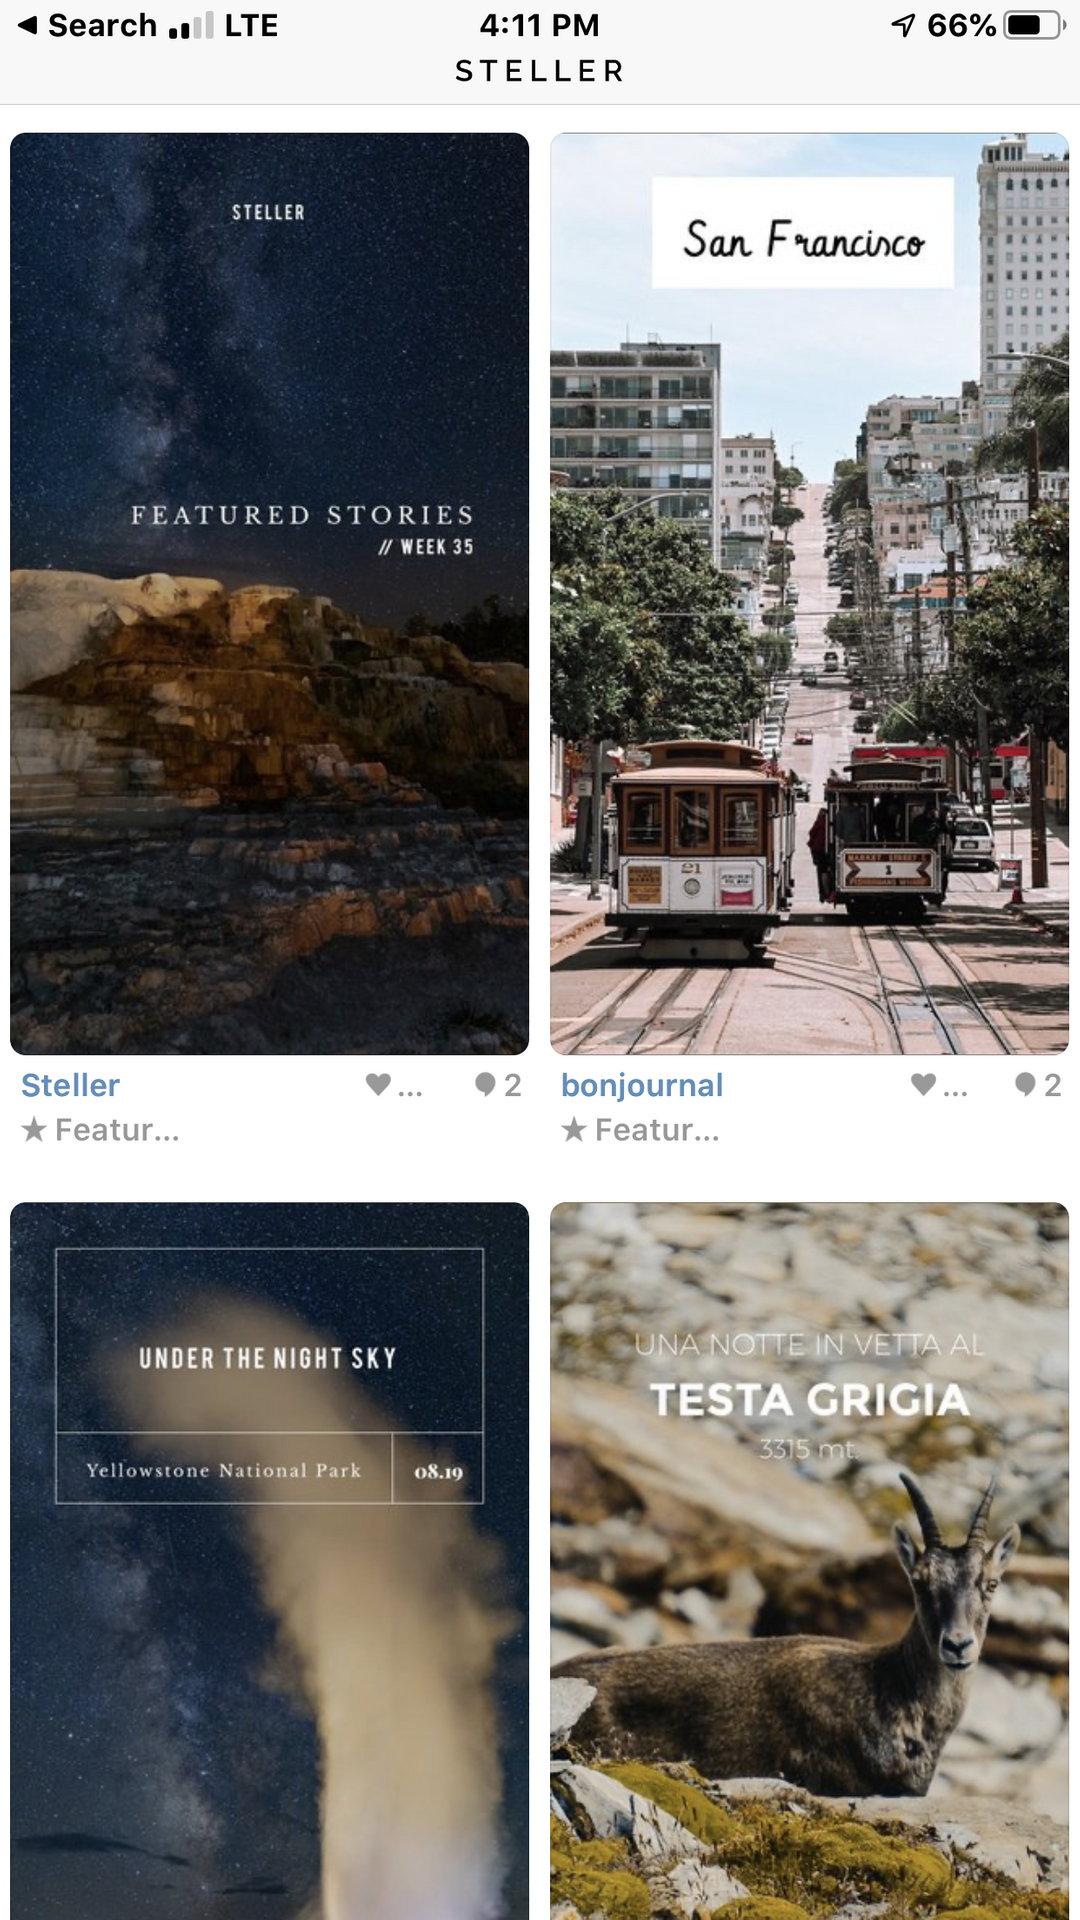 Once an Apple iPhone app of year, Steller revived for travel stories